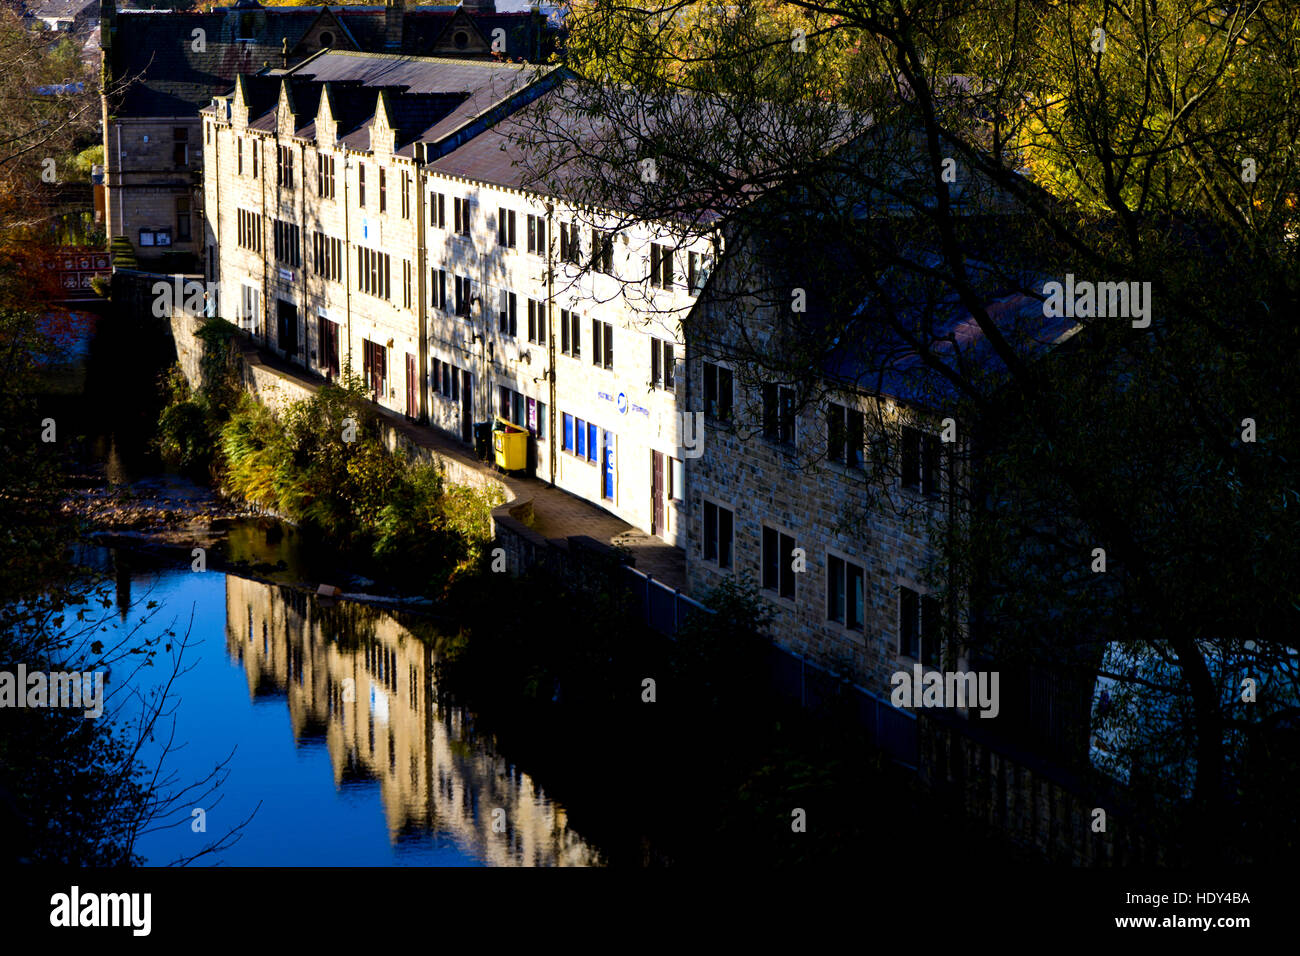 A row of buildings reflected in the calm waters of Hebden Beck, Hebden Bridge, Calderdale, West Yorkshire, UK - Stock Image